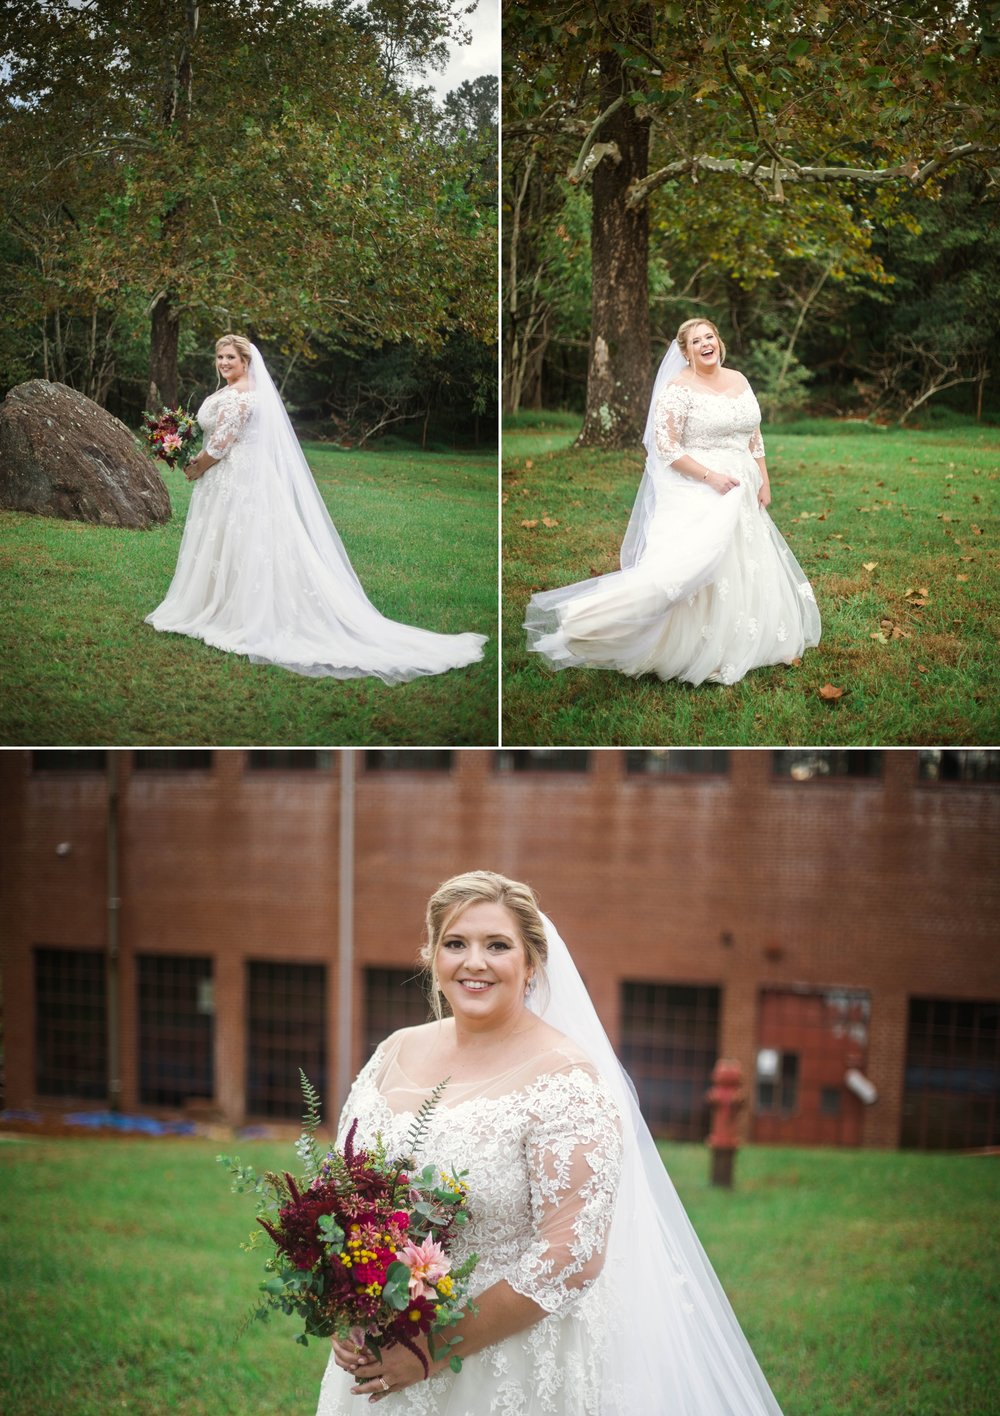 Bridal Portraits - Brittany + Douglas - Forest Hall at Chatham Mills in Pittsboro, NC - Raleigh North Carolina Wedding Photographer